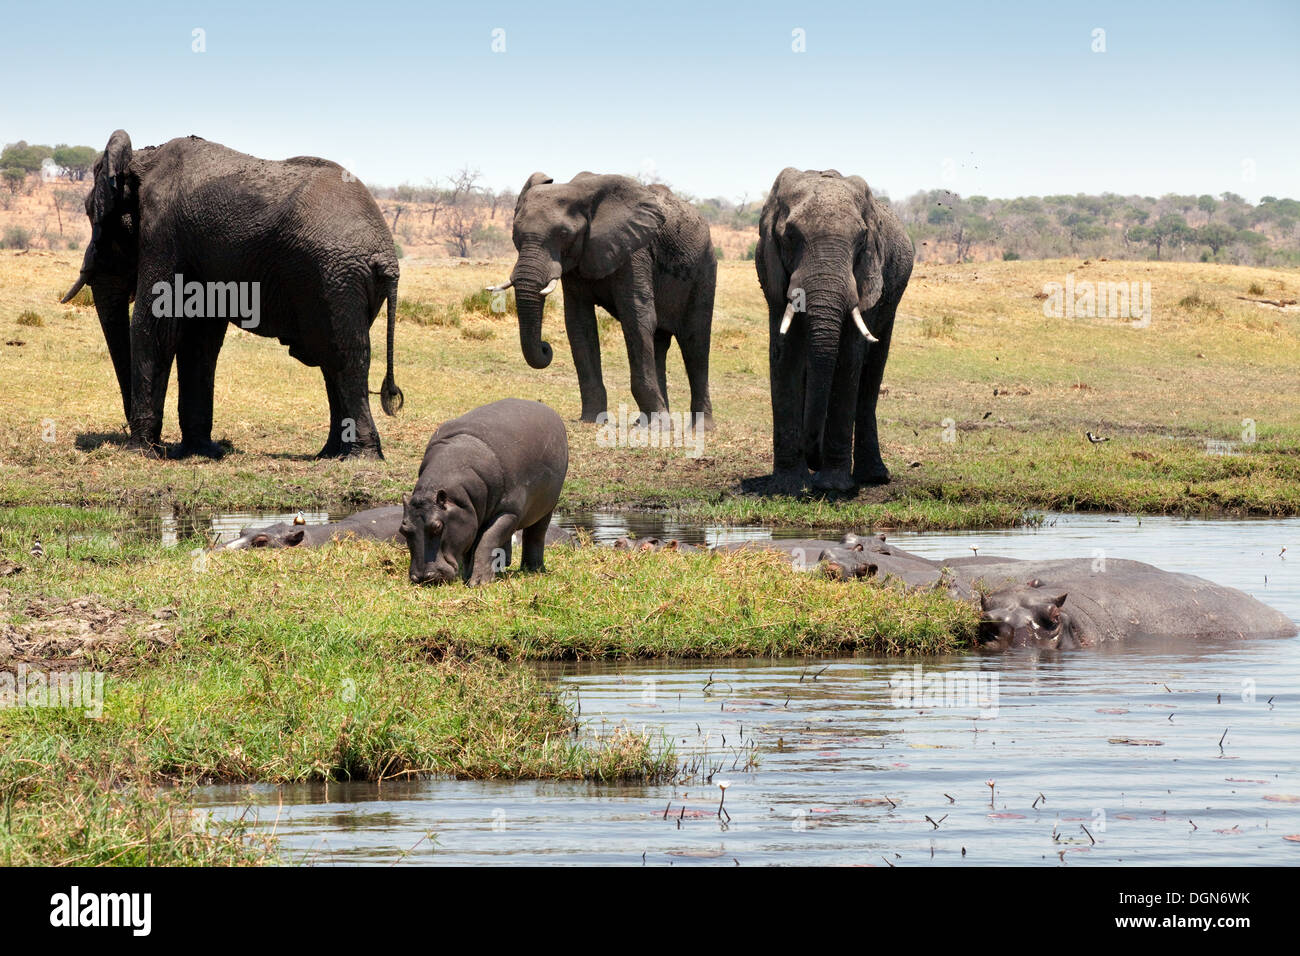 African elephants and hippos on the banks of the River Chobe, Chobe National park, Botswana Africa - Stock Image